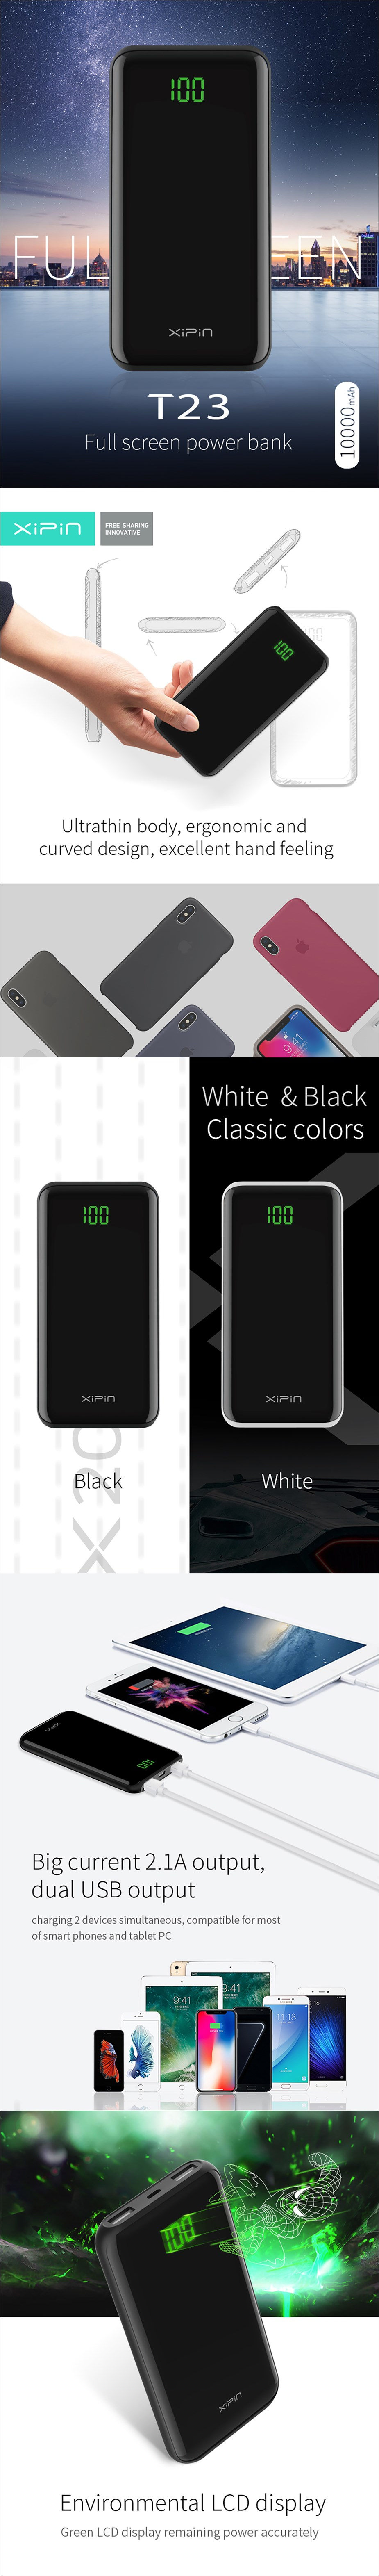 XiPin T23 10000mAh Dual USB Portable Power Bank with LCD Display - Black - Overview 1